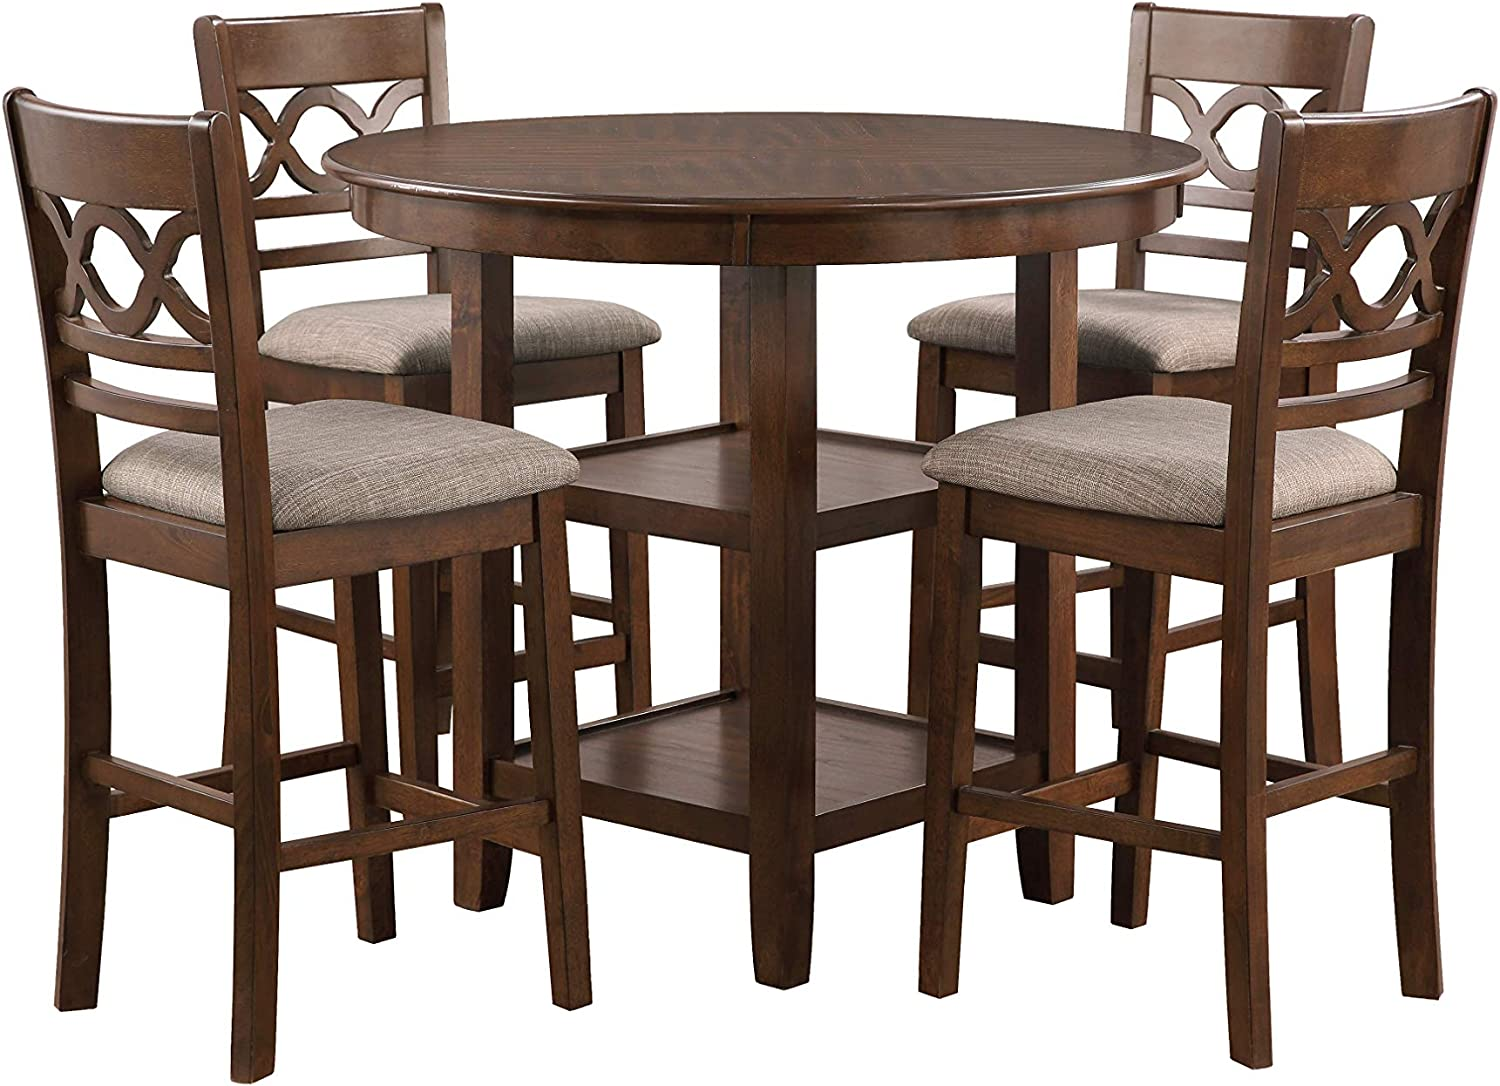 New Classic Furniture Cori 5-Piece Counter Dining Table Set, Cherry